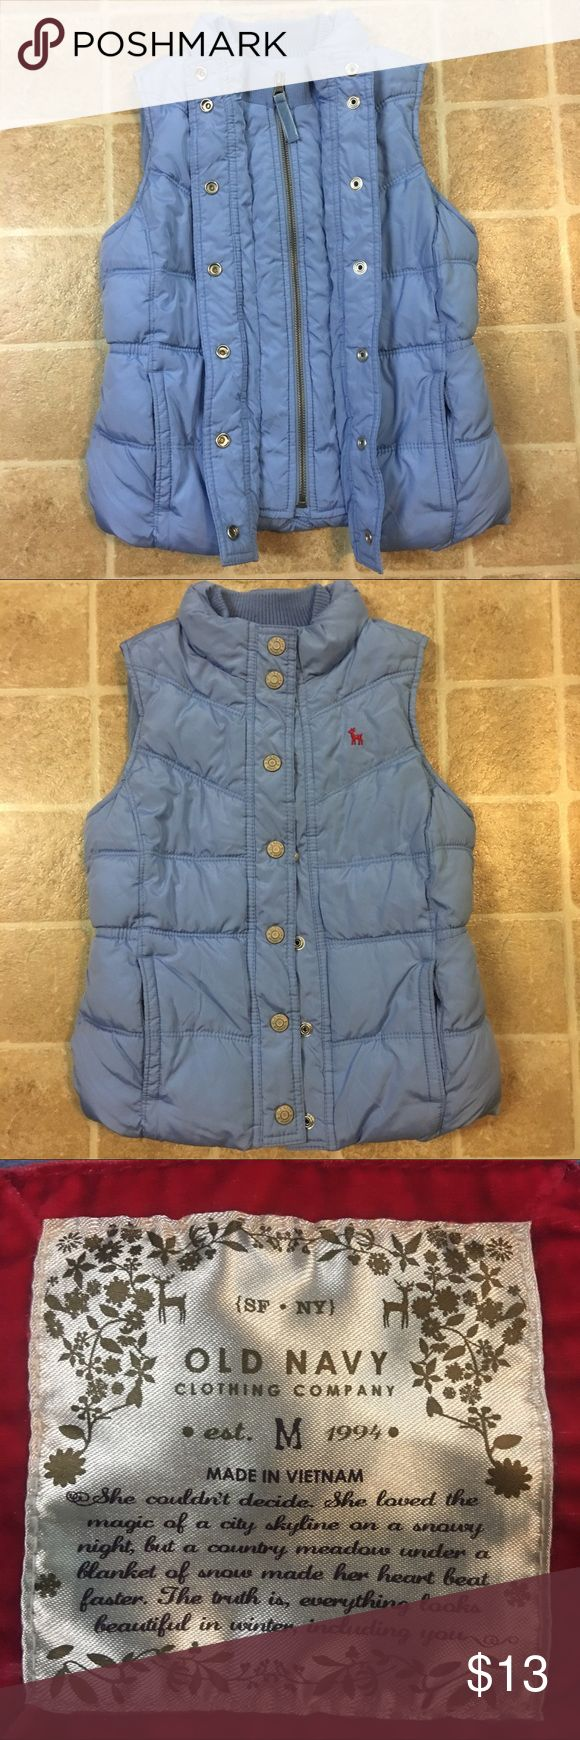 Old Navy kids jacket size medium Old Navy, girls baby blue, puffer jacket size medium. No stains or imperfections. Old Navy Jackets & Coats Puffers